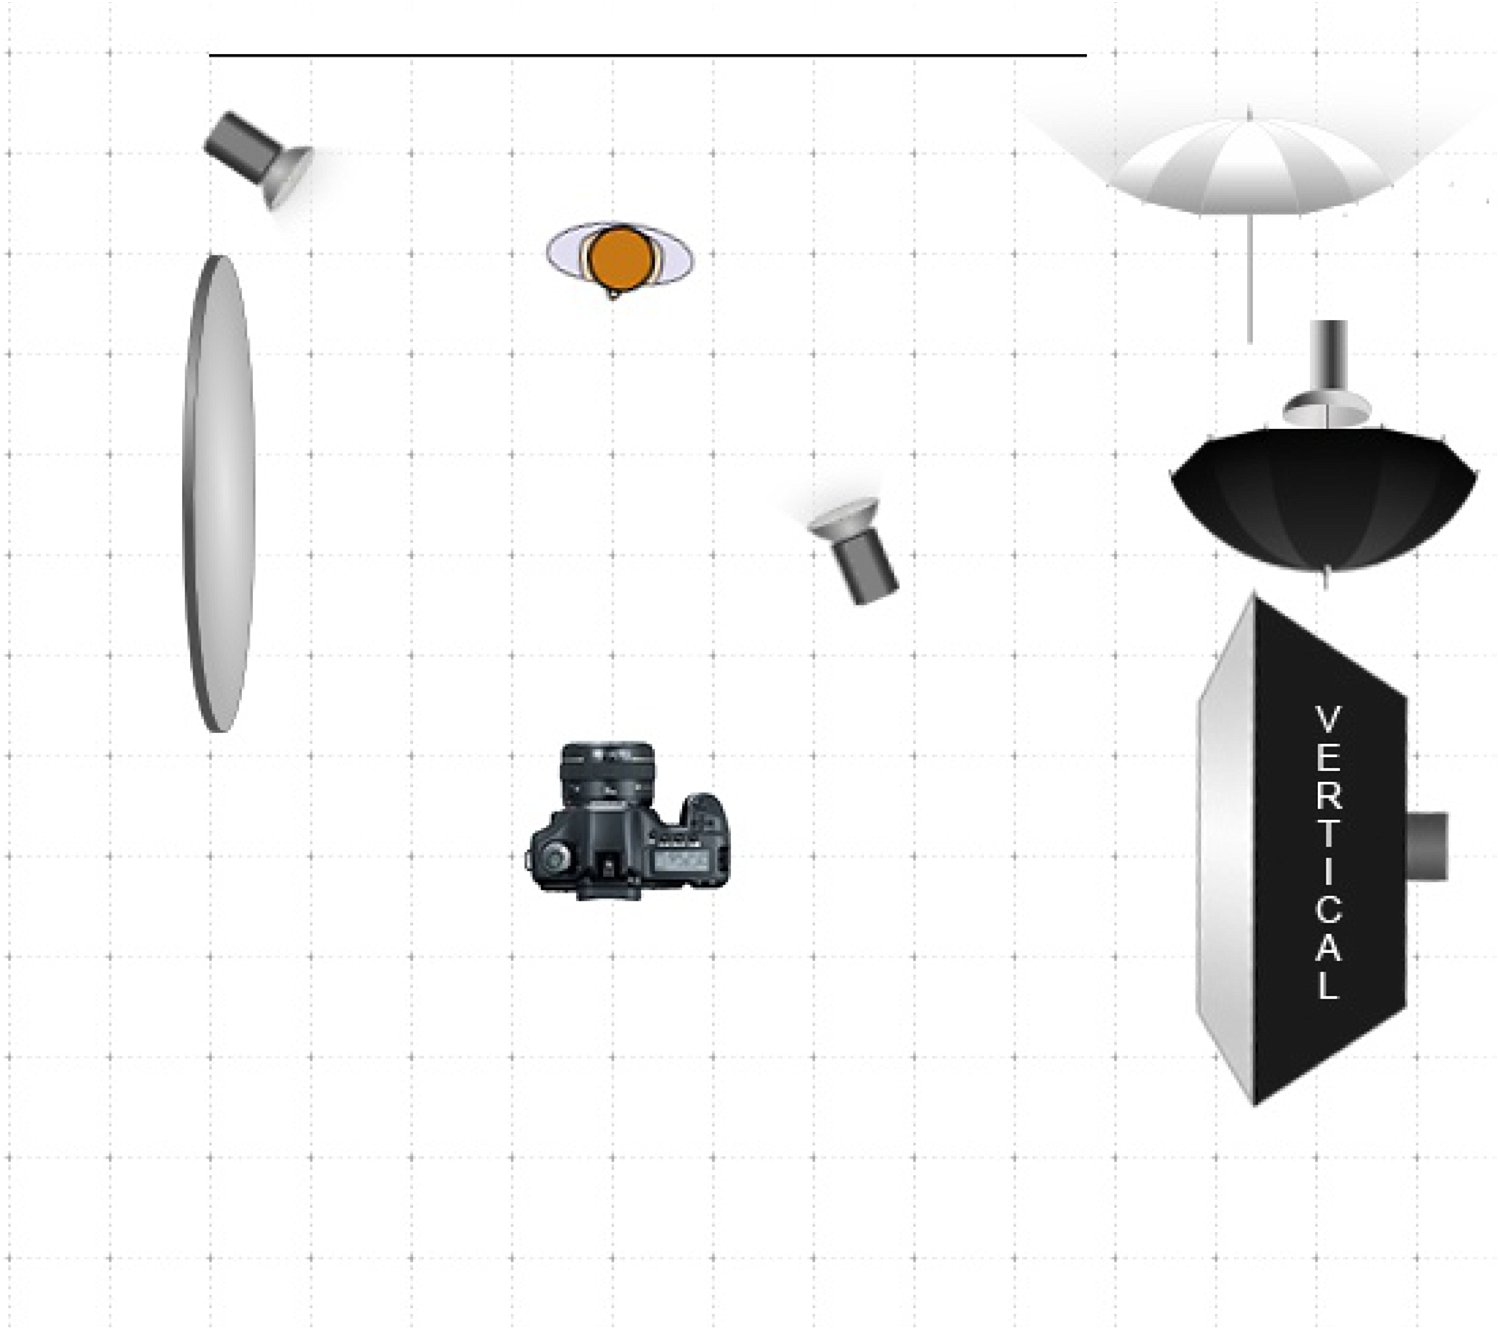 Side-by-side Comparisons of Basic Studio Light Modifiers 2